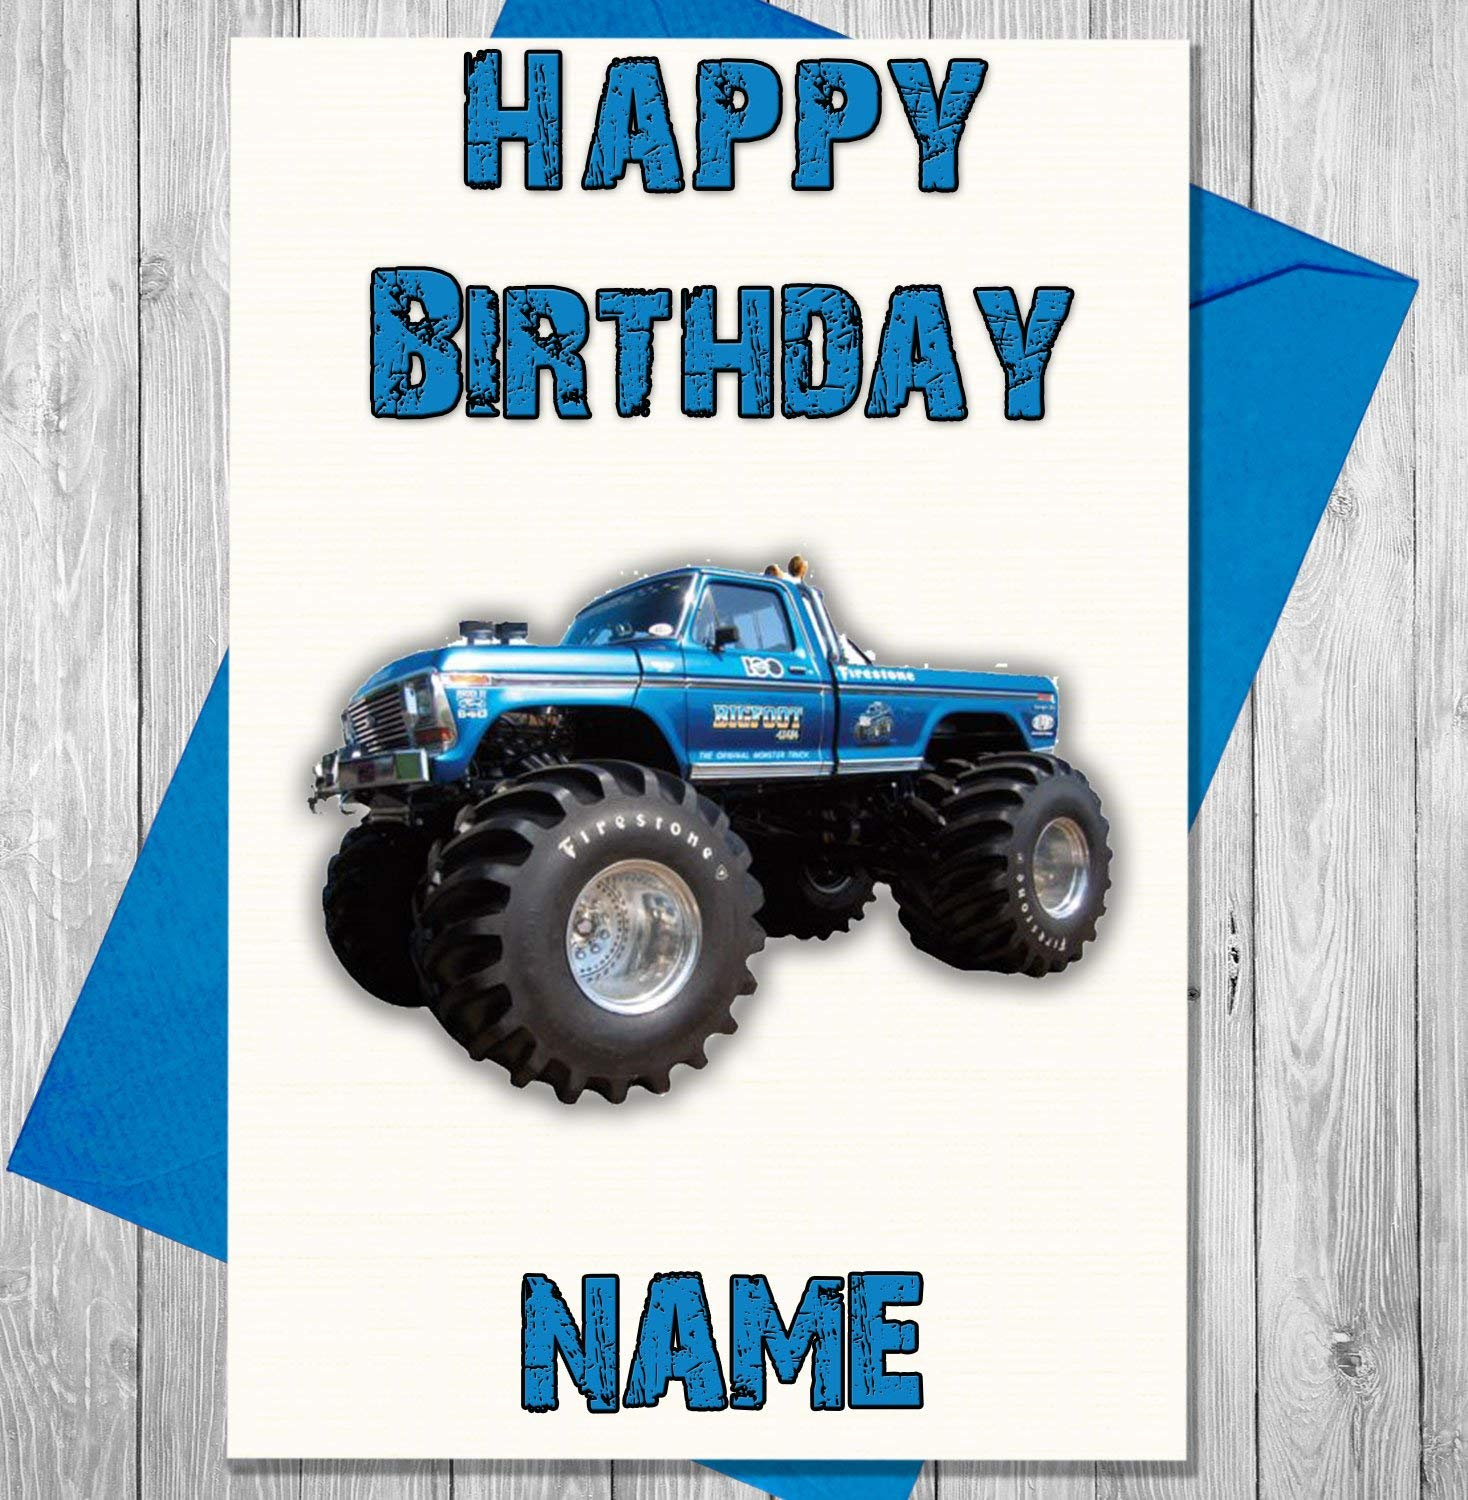 happy birthday monster truck ; 81JqpciI1iL